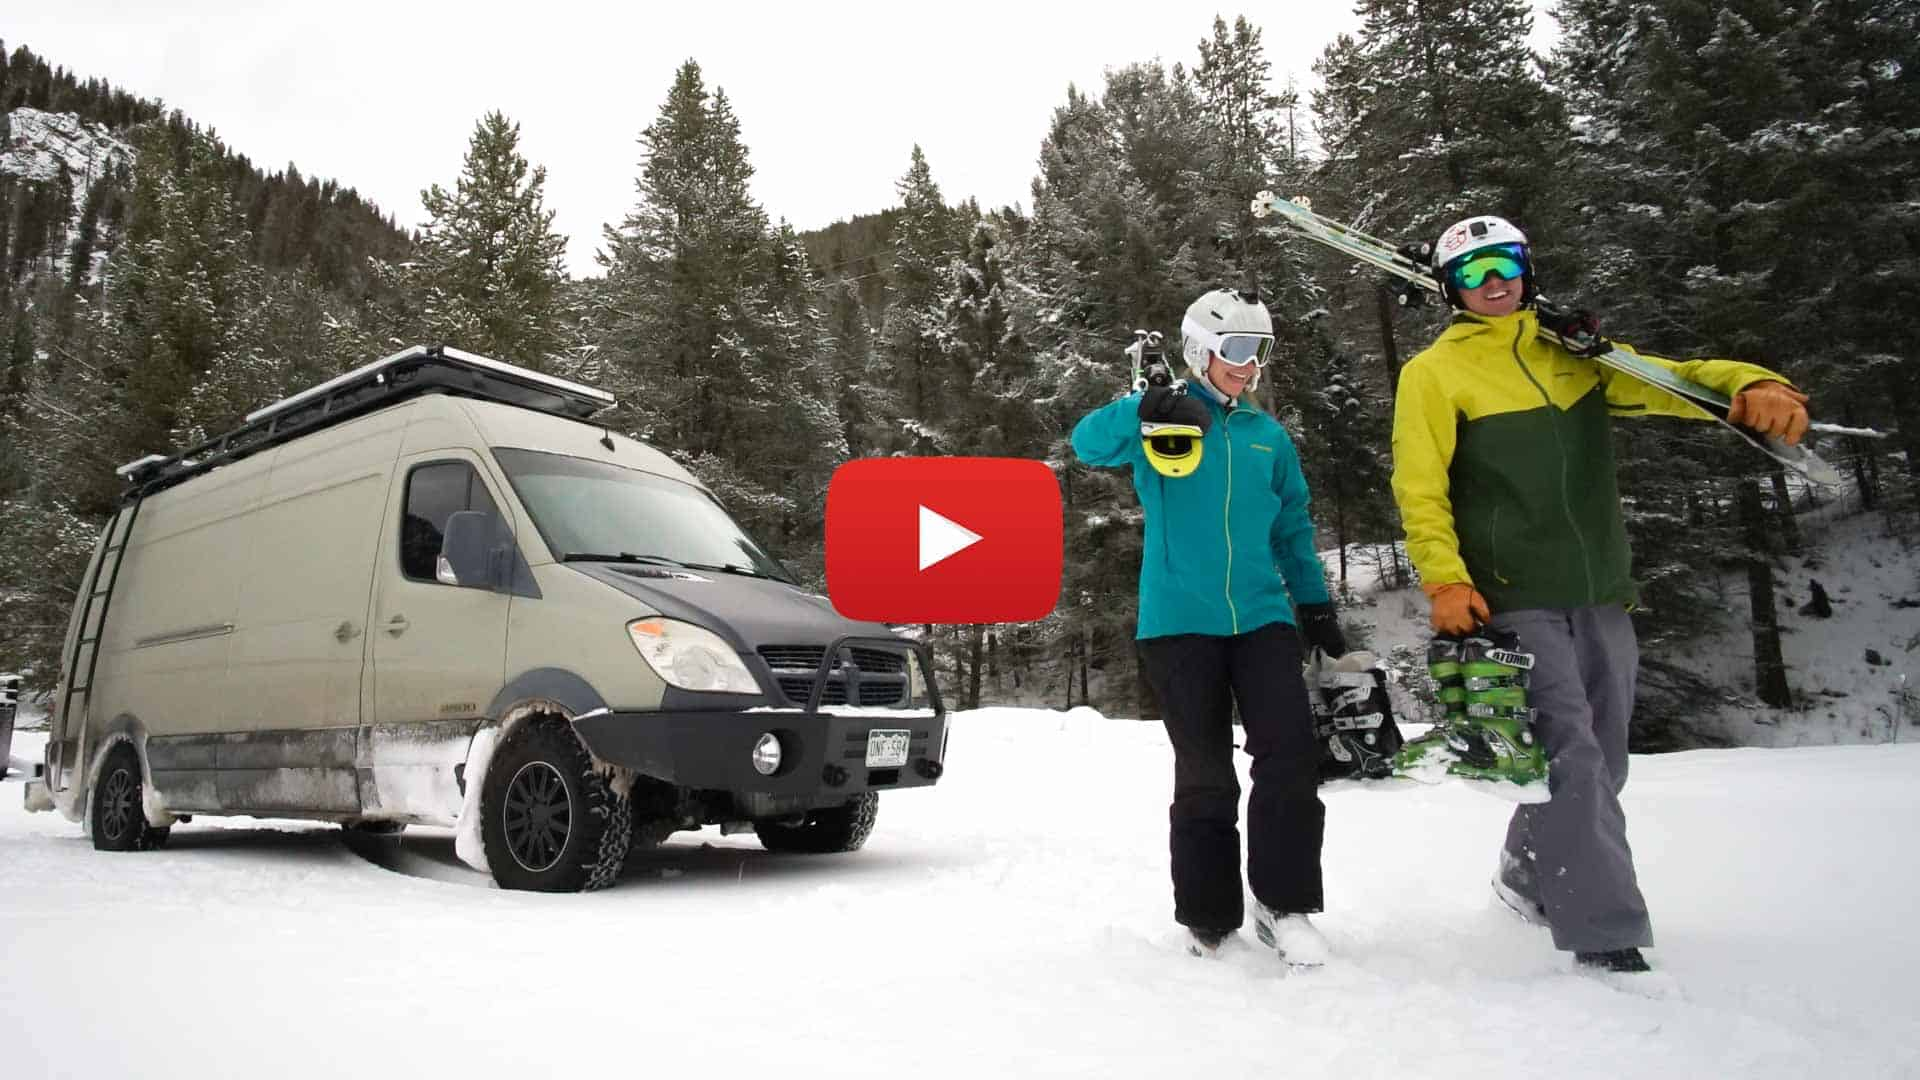 Winter Vanlife is More than skiing Powder Jackson Hole 1 of 1 - Ep 2 - Sun Valley | Winter Vanlife is More than Skiing Powder